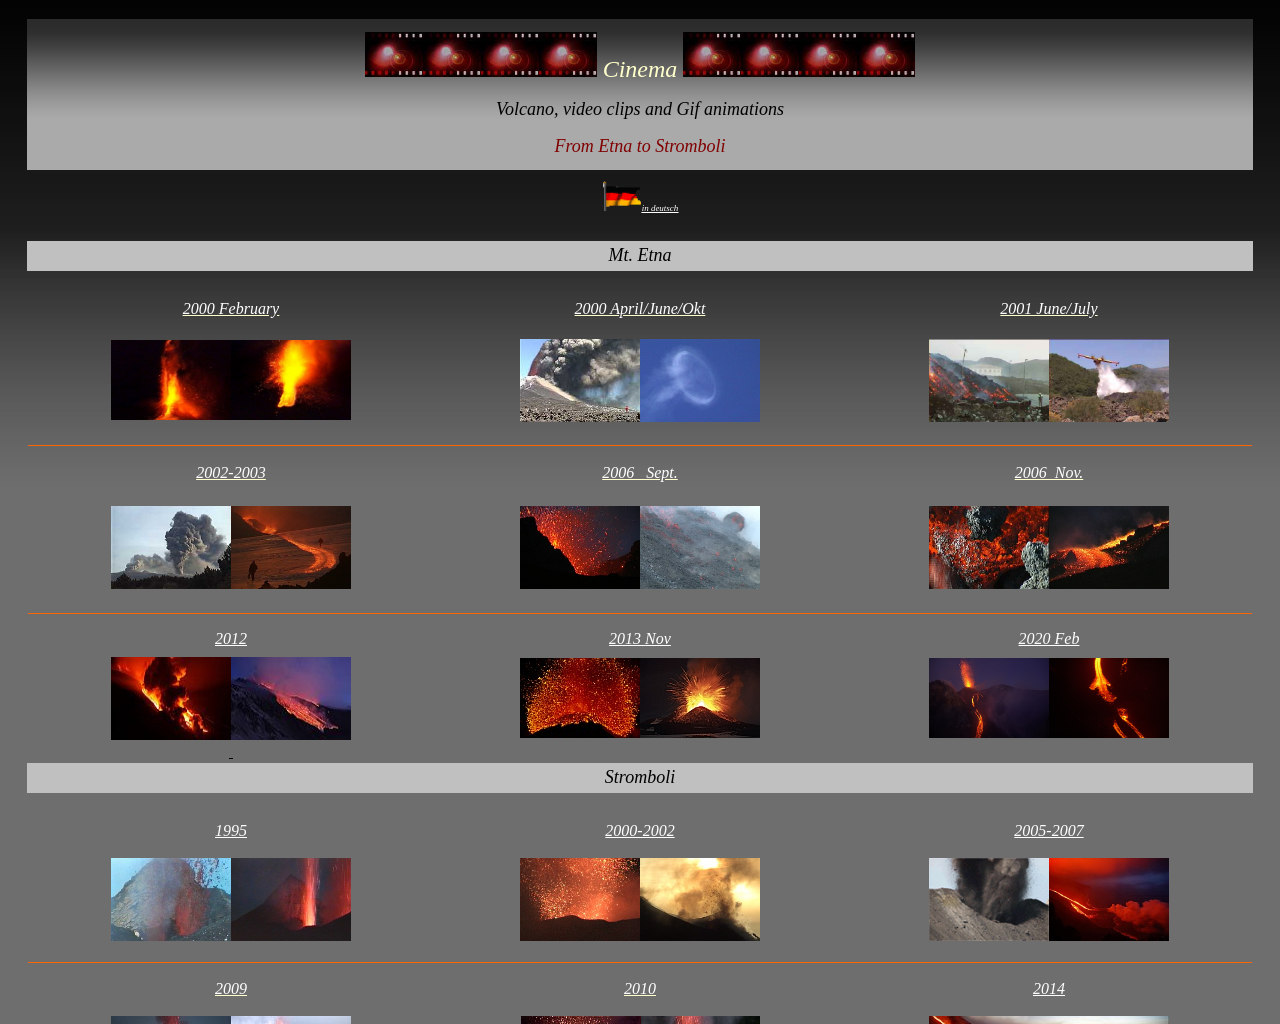 Video of eruptions